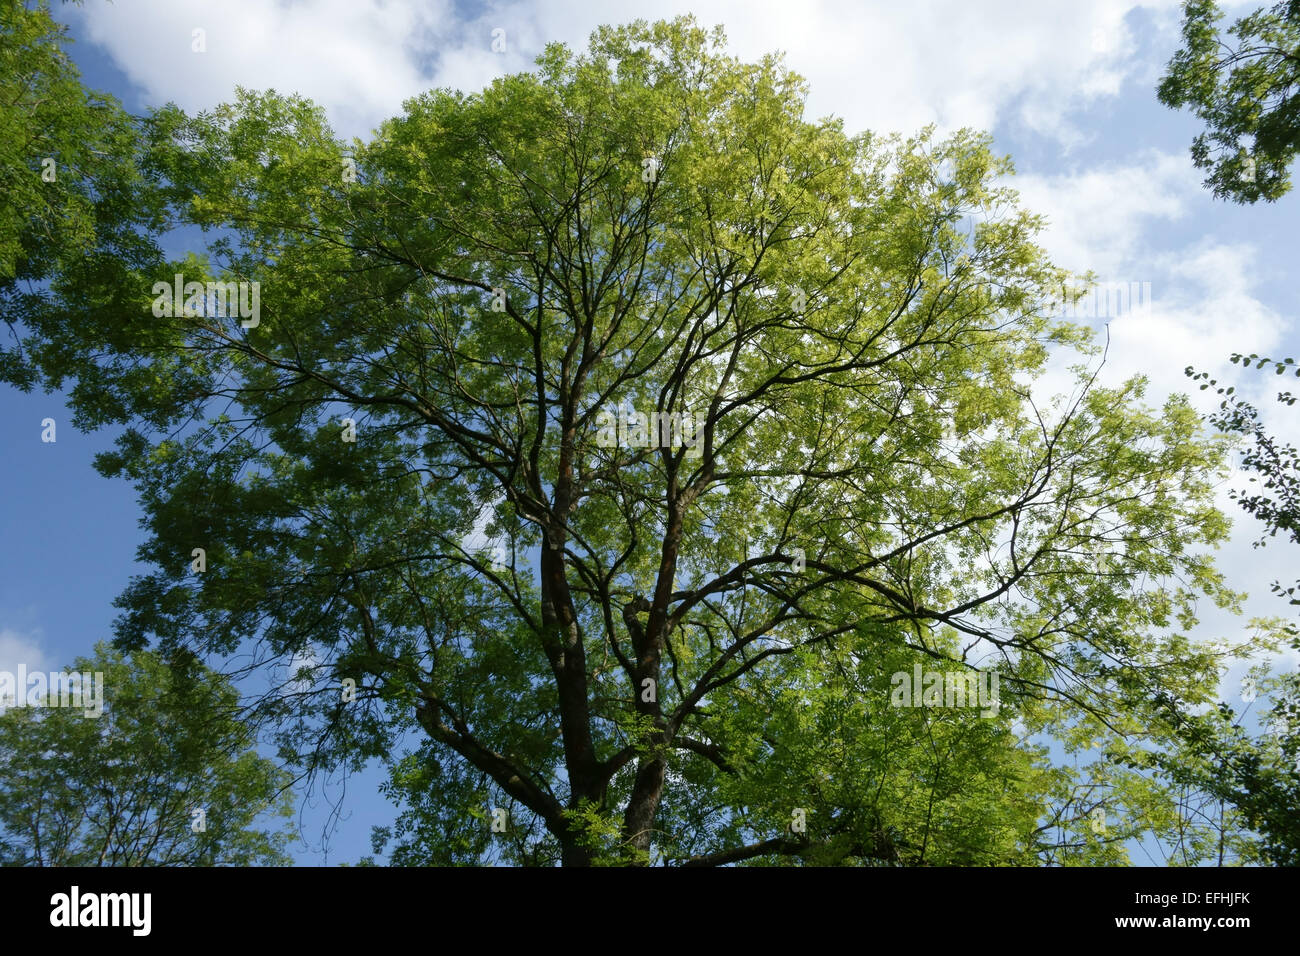 A mature ash tree, Fraxinus excelsior, in full leaf, Berkshire, August - Stock Image